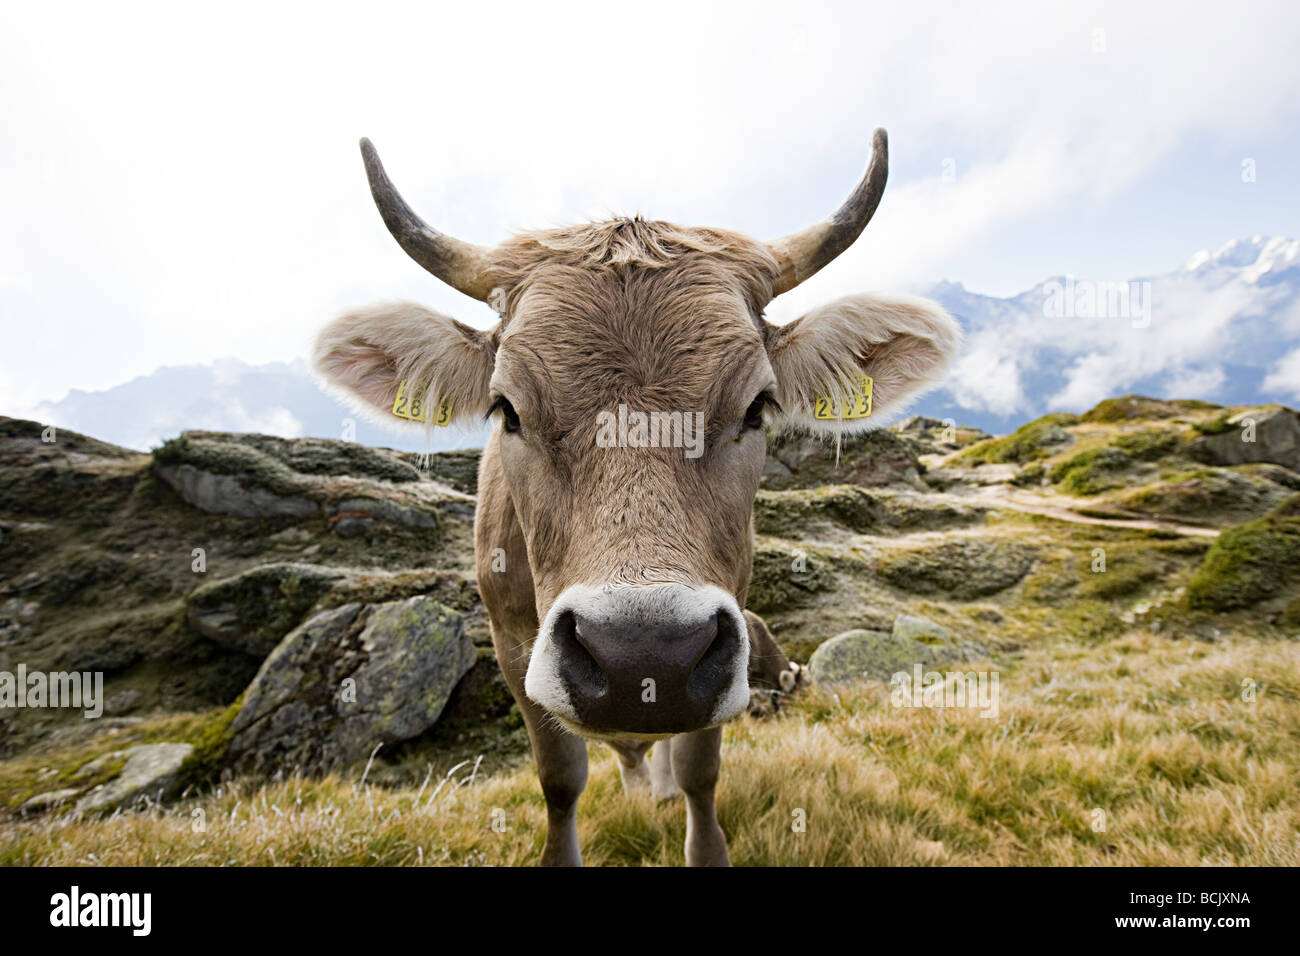 Vache dans un champ suisse Photo Stock